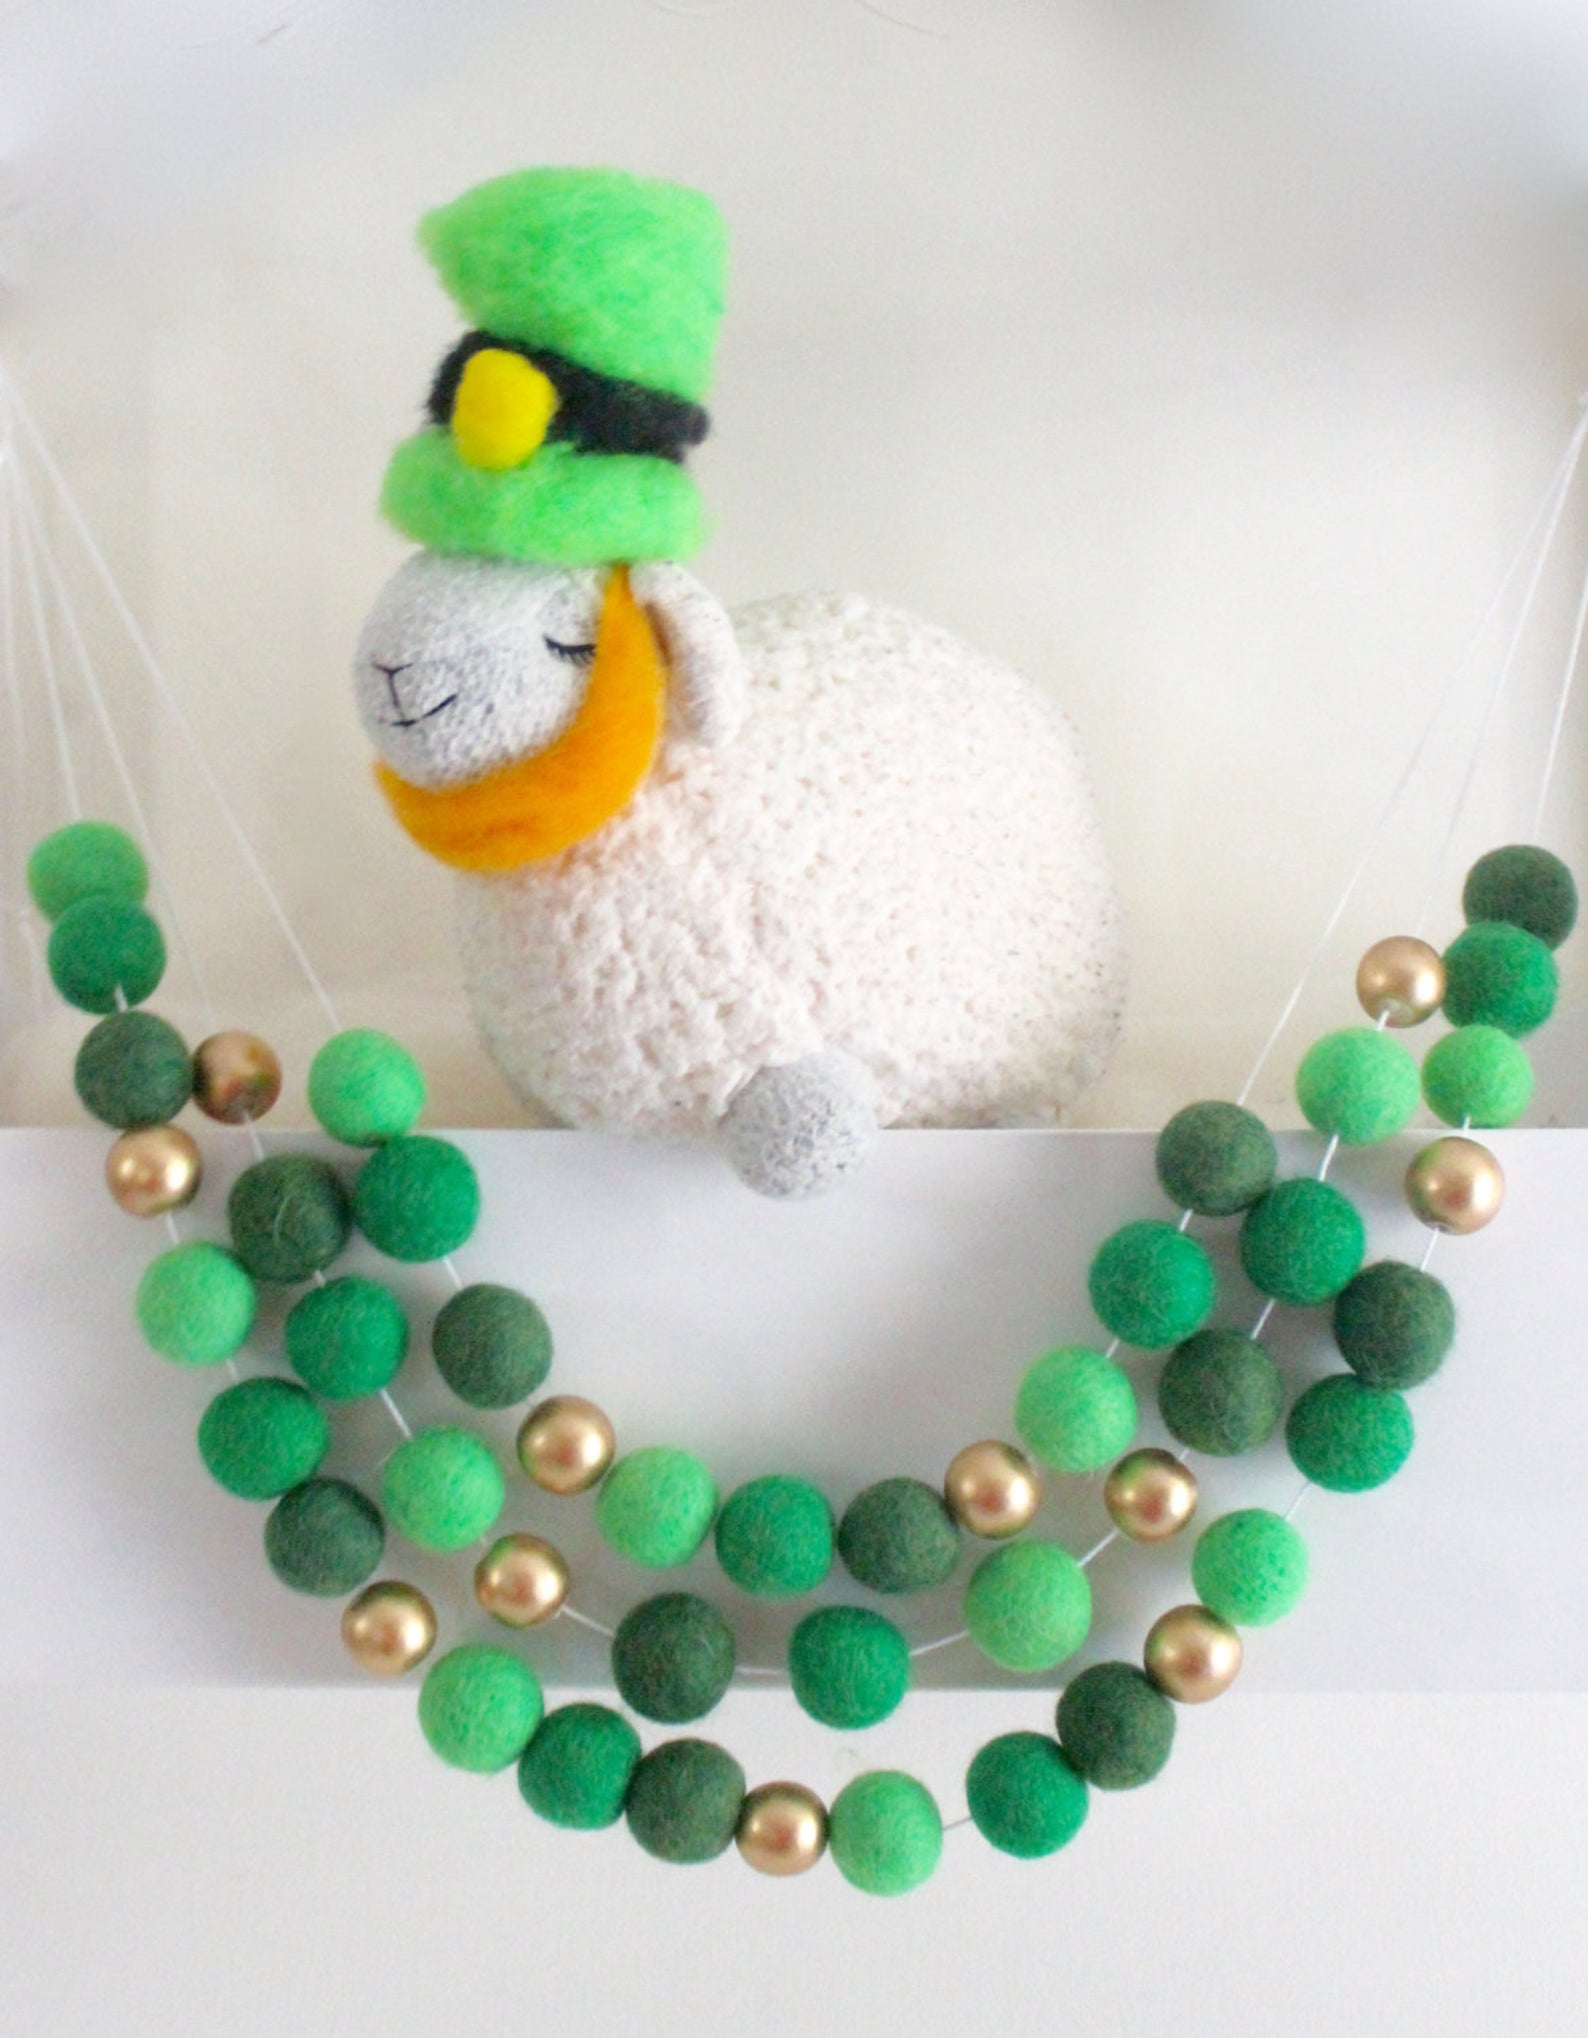 Decoration ideas for St. Patrick & # 39; s Day - wreath for St. Patrick & # 39; s Day